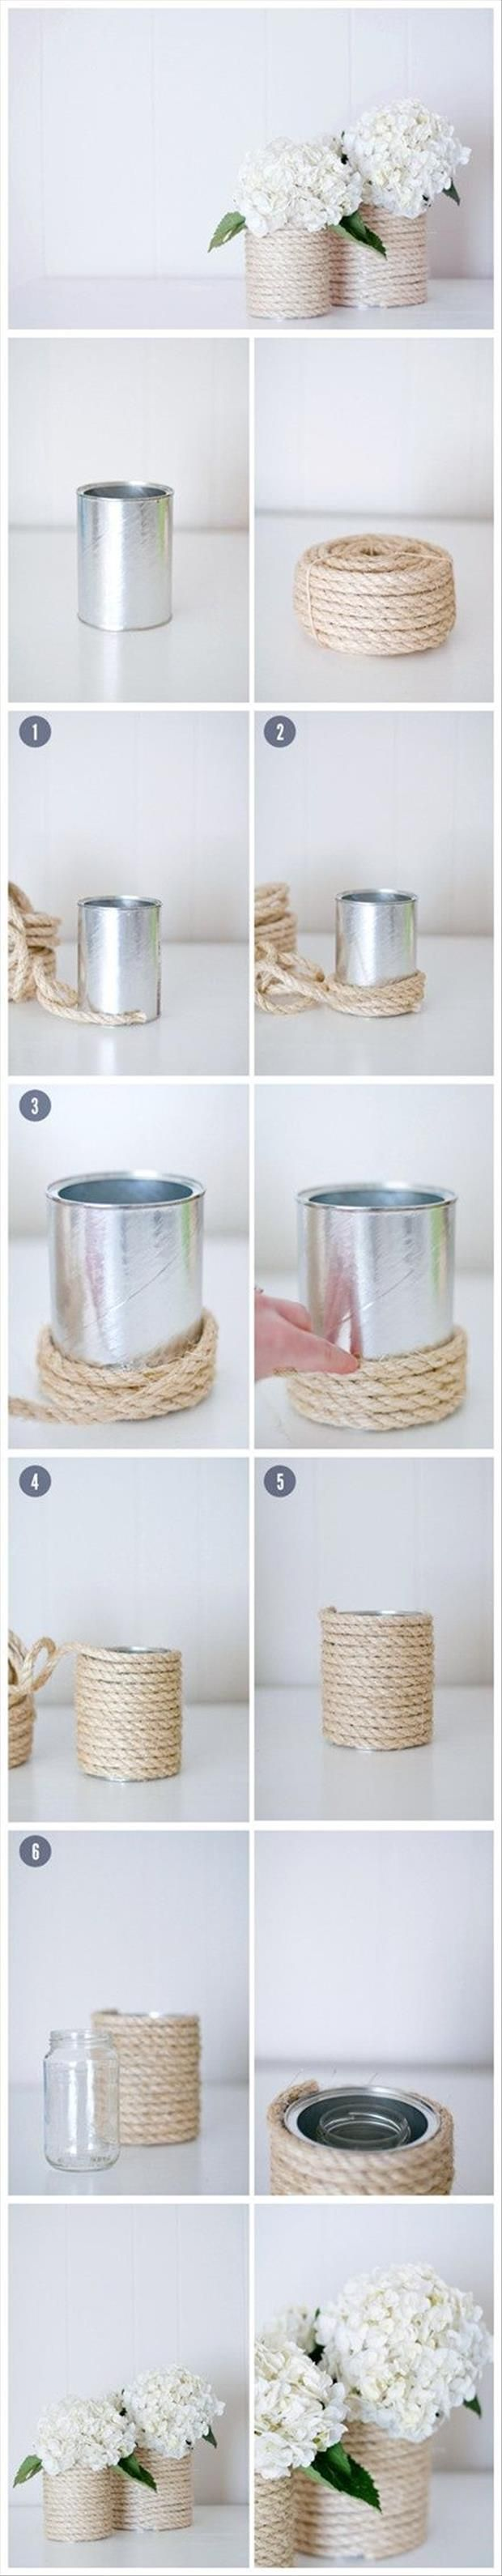 Simple Ideas That Are Borderline Crafty - 39 Pics